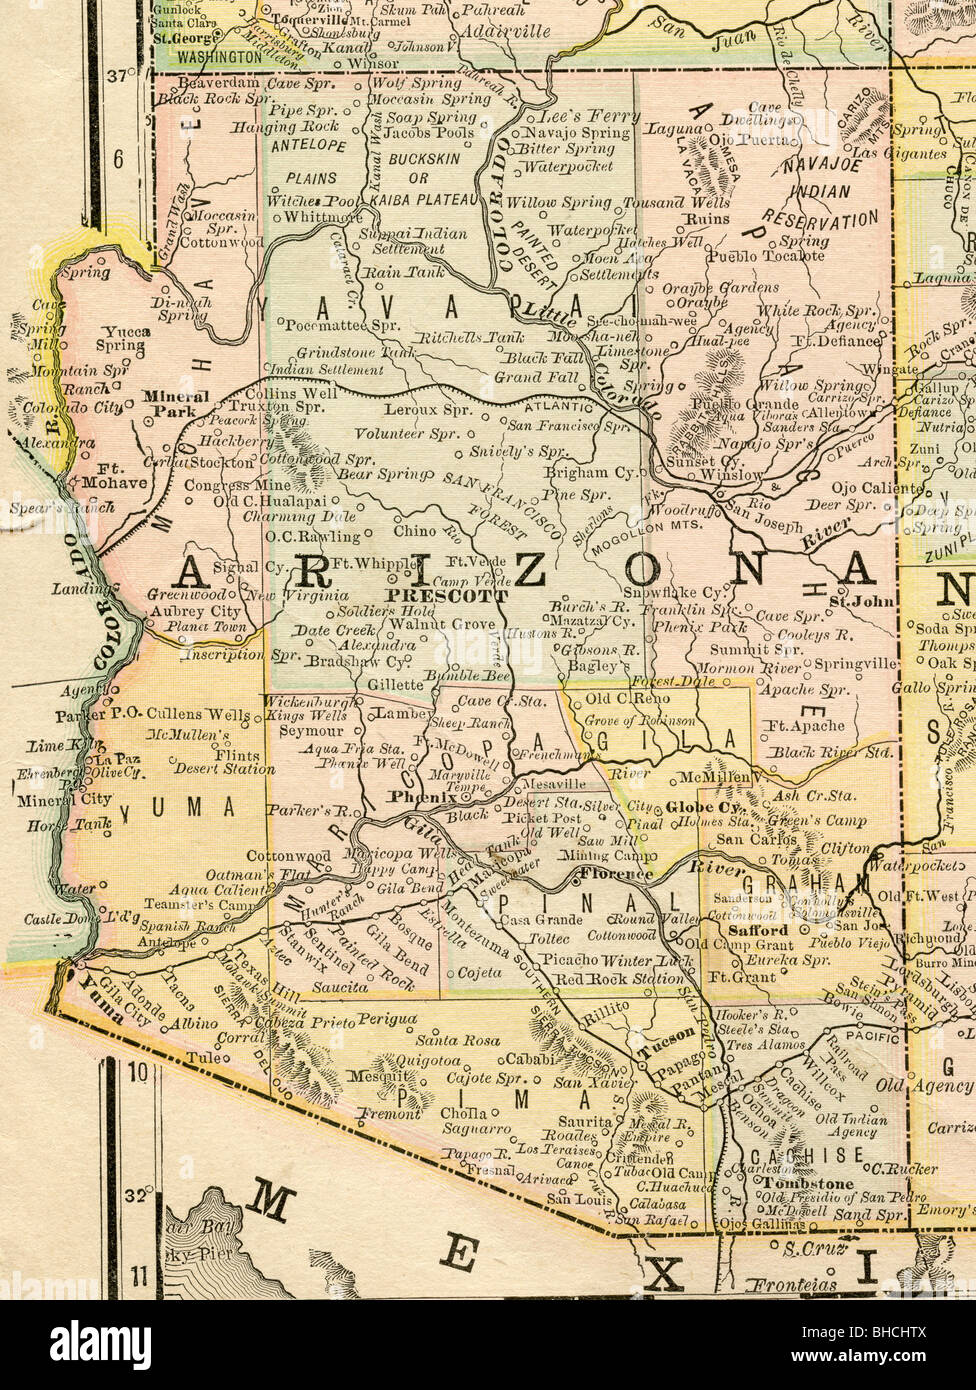 Map Of Old Arizona.Original Old Map Of Arizona From 1884 Geography Textbook Stock Photo